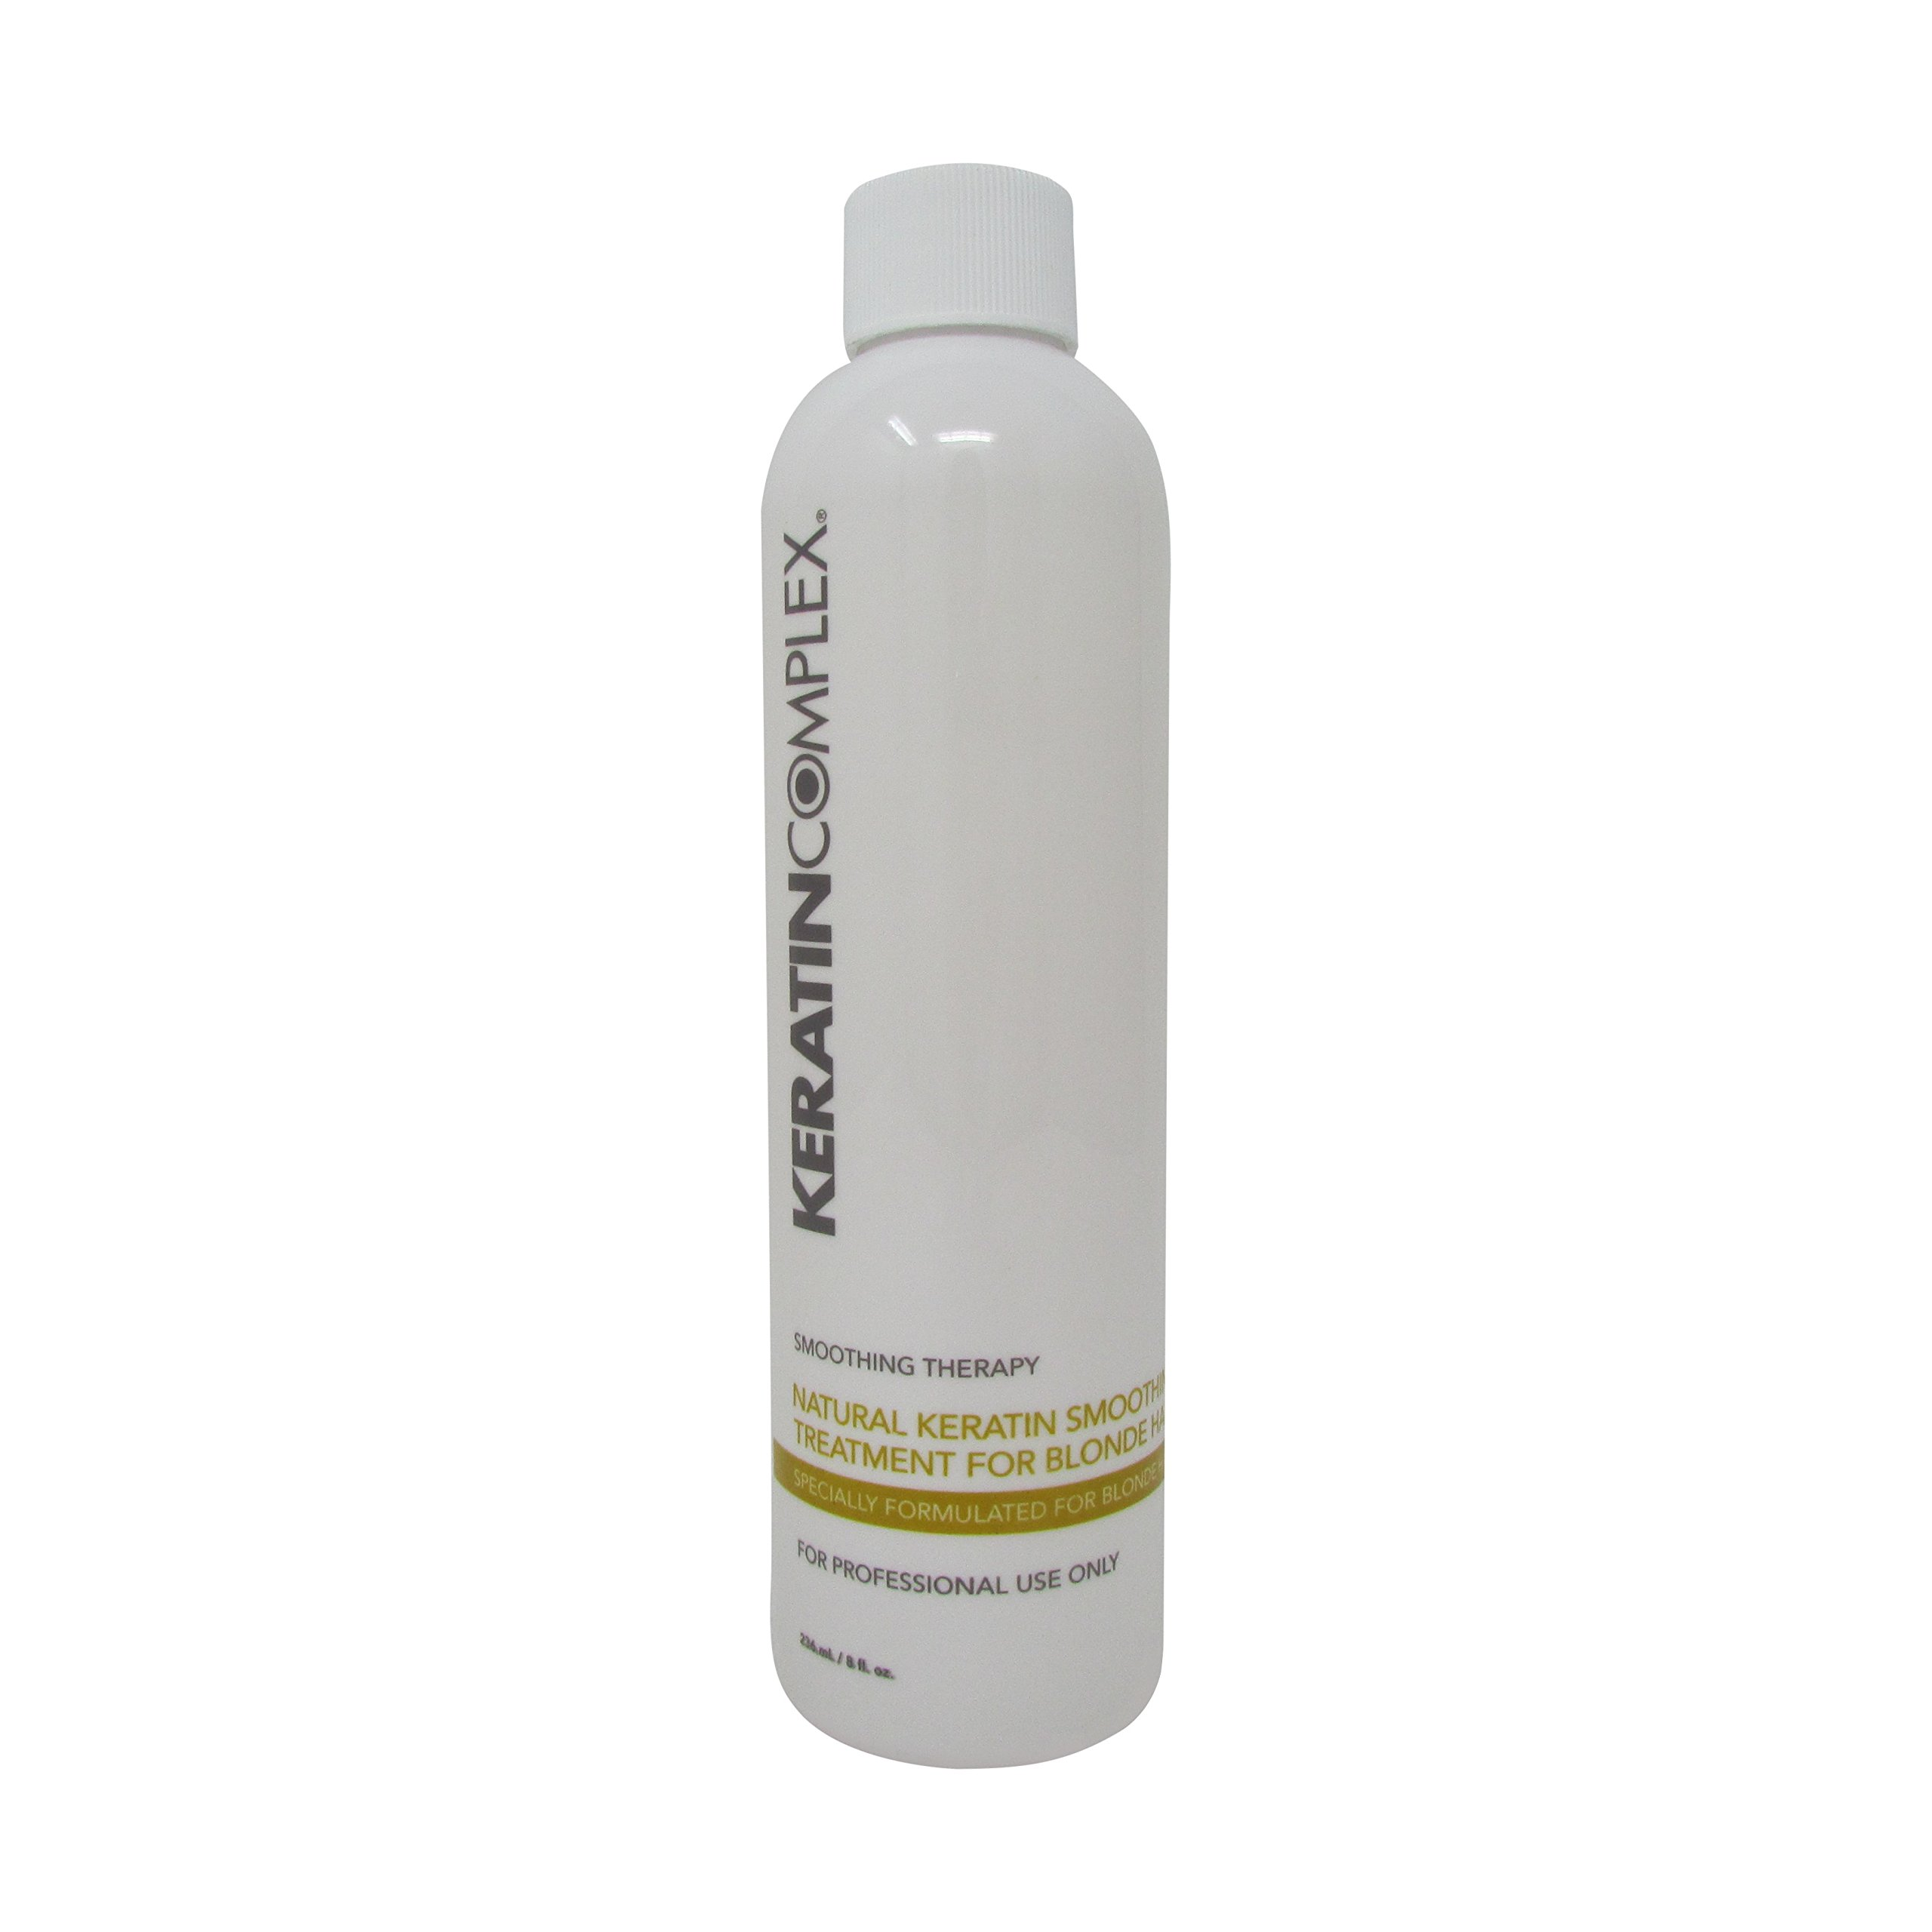 Keratin Complex Natural Keratin Smoothing Treatment for Blondes, 8 Oz